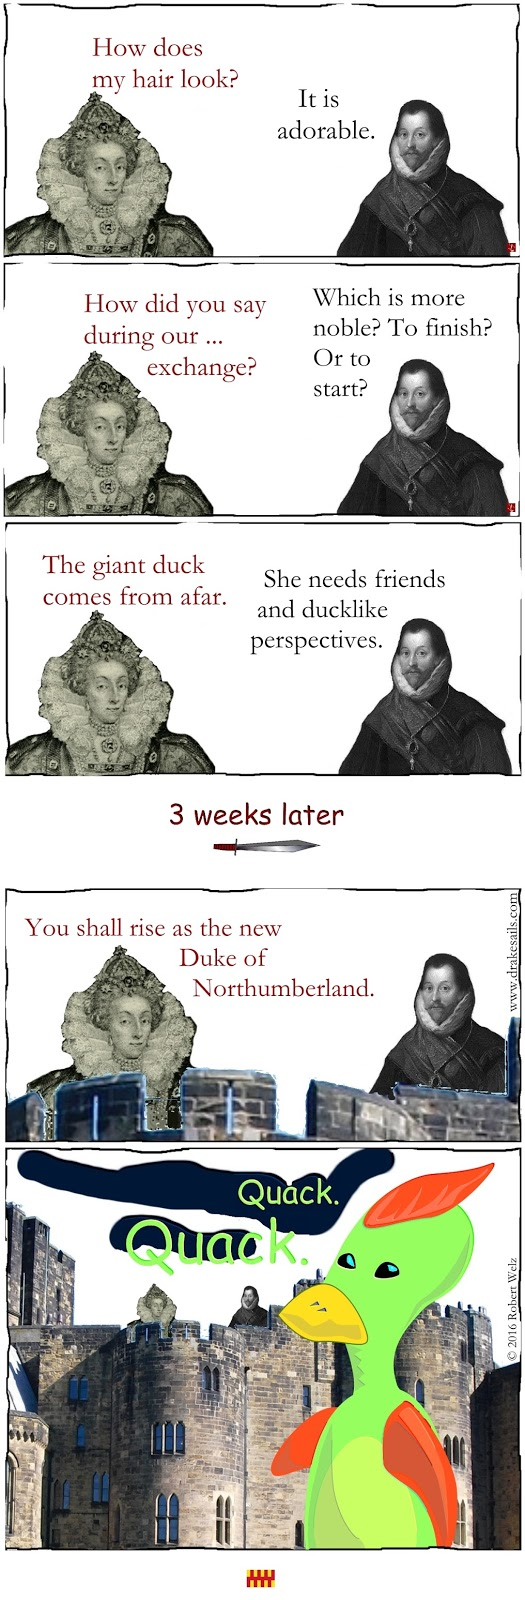 What a brilliant solution. Sir Francis Drake knows how to gain strong, new friends and allies. Elizabeth I is thrilled.